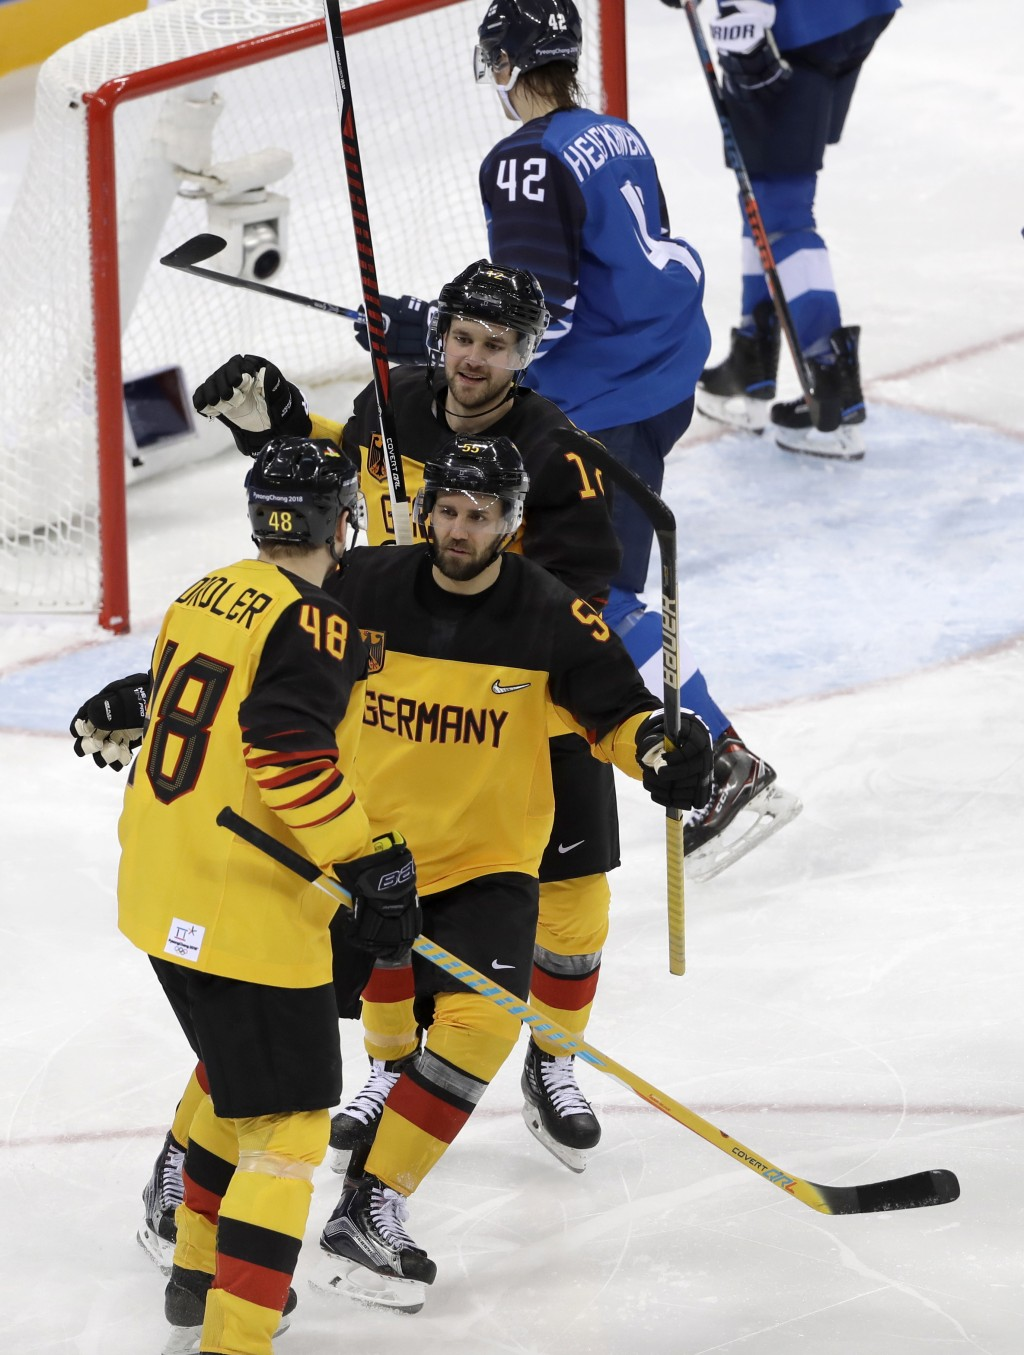 Frank Hordler (48), of Germany, celebrates a goal against Finland with his teammates during the third period of the preliminary round of the men's hoc